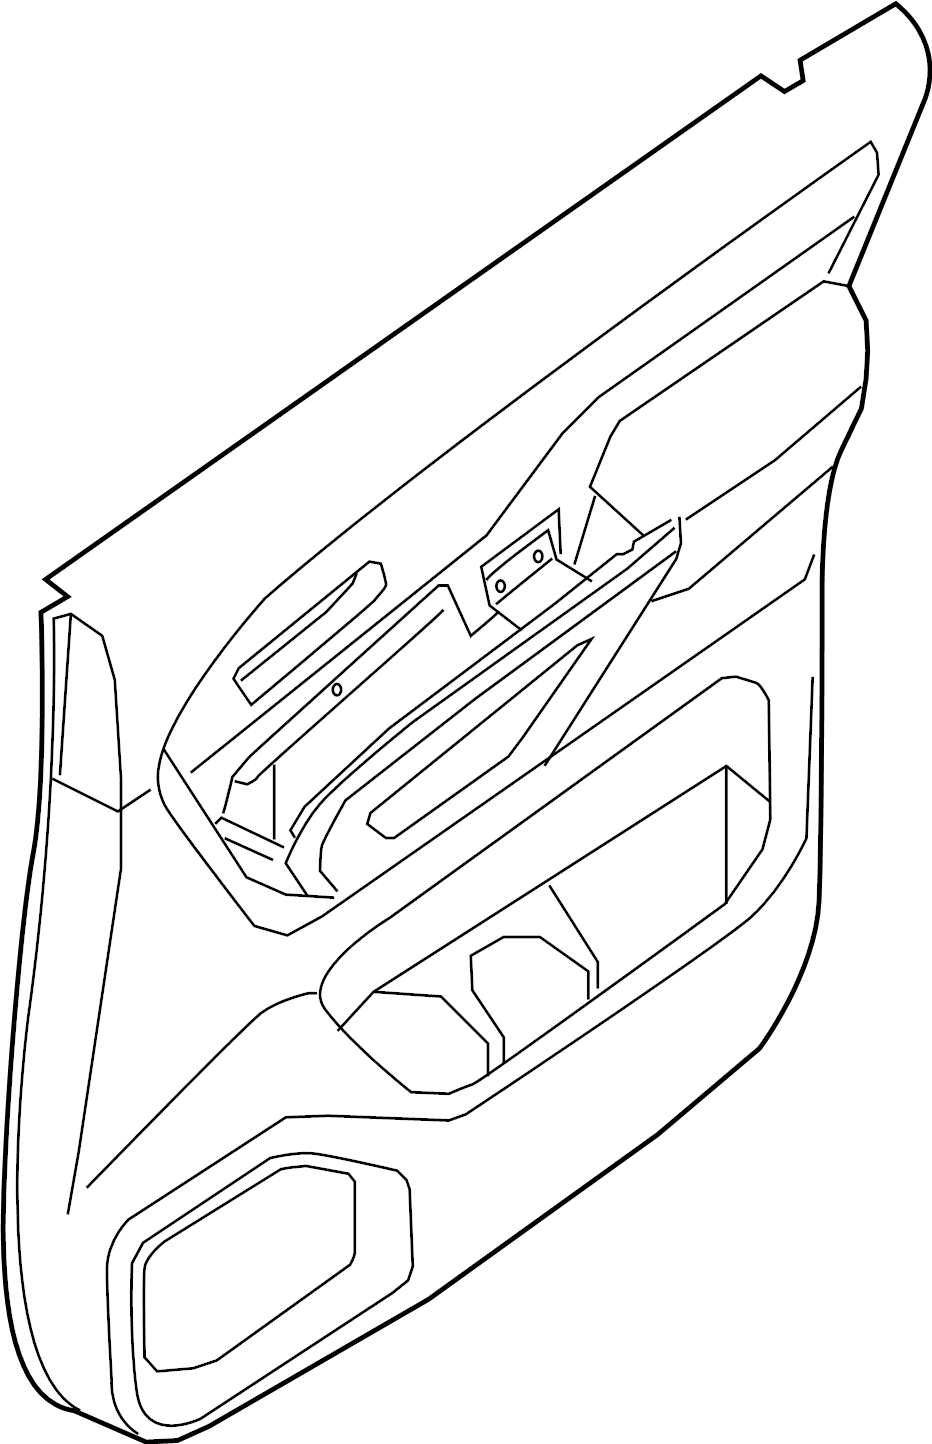 Nissan Titan Door Interior Trim Panel (Right, Rear